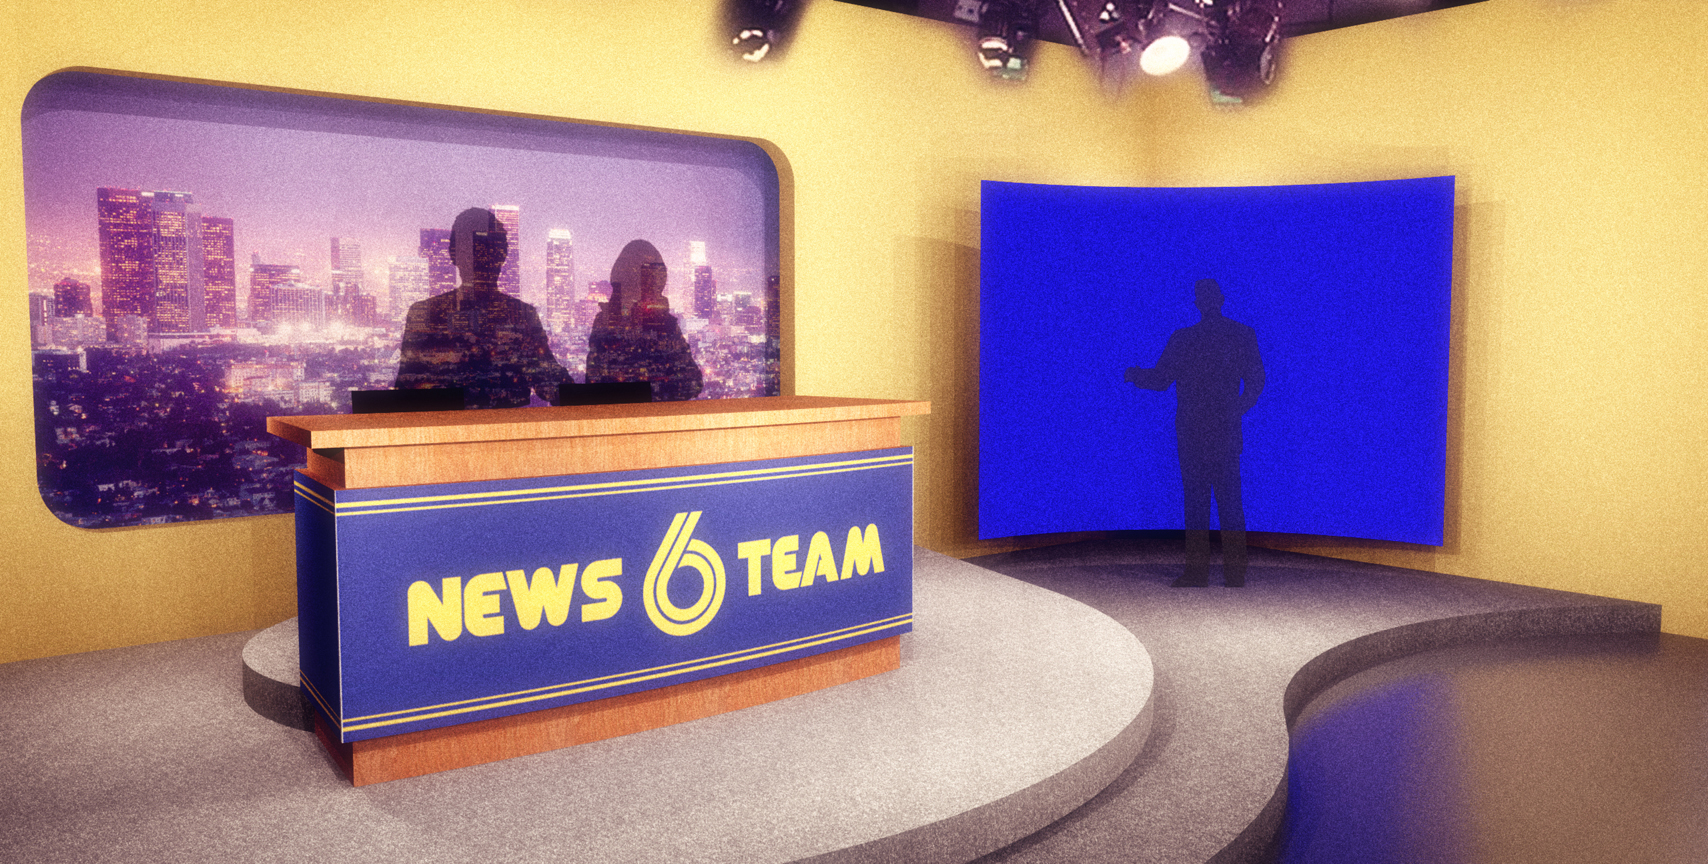 NEWS TEAM SIX, NEWS CAMERA VIEW - 3D RENDERING